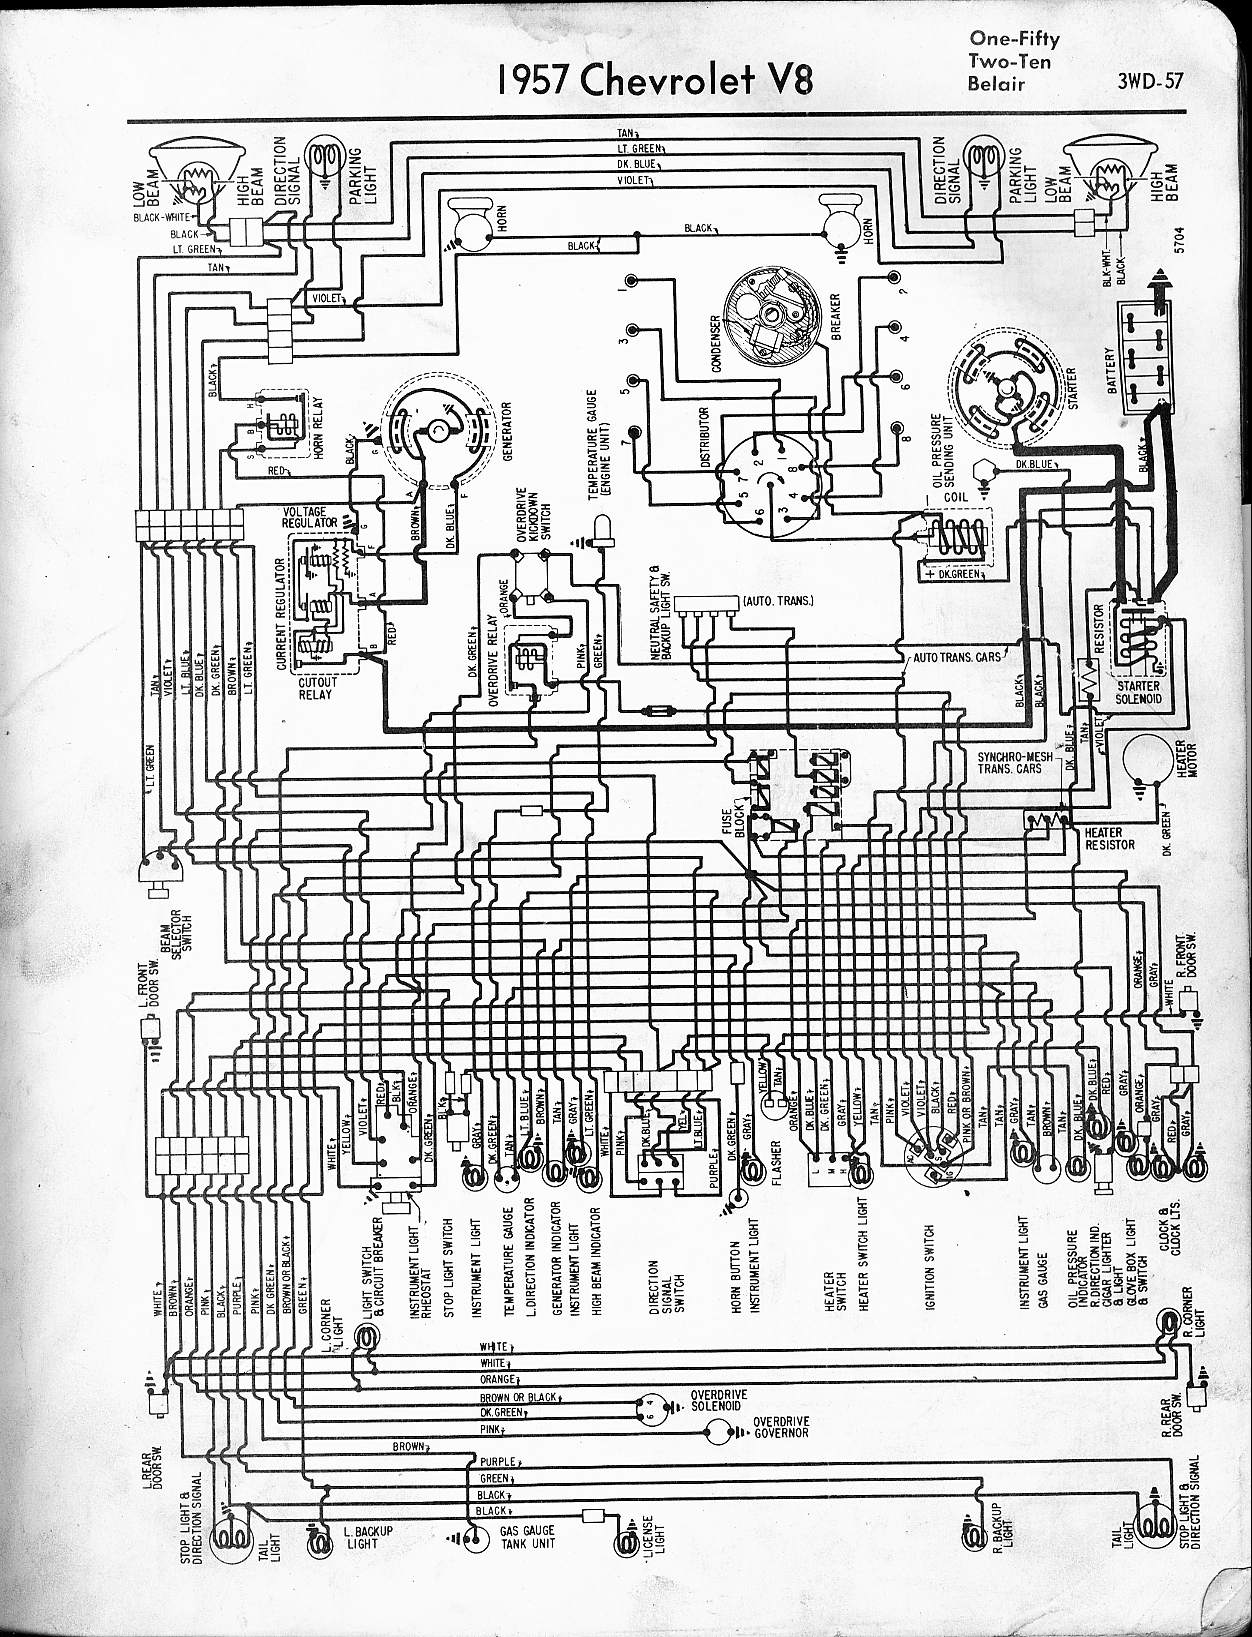 Funny Wiring Harness Diagram Sample Best Practices Automotive 57 Chevy Simple Gm